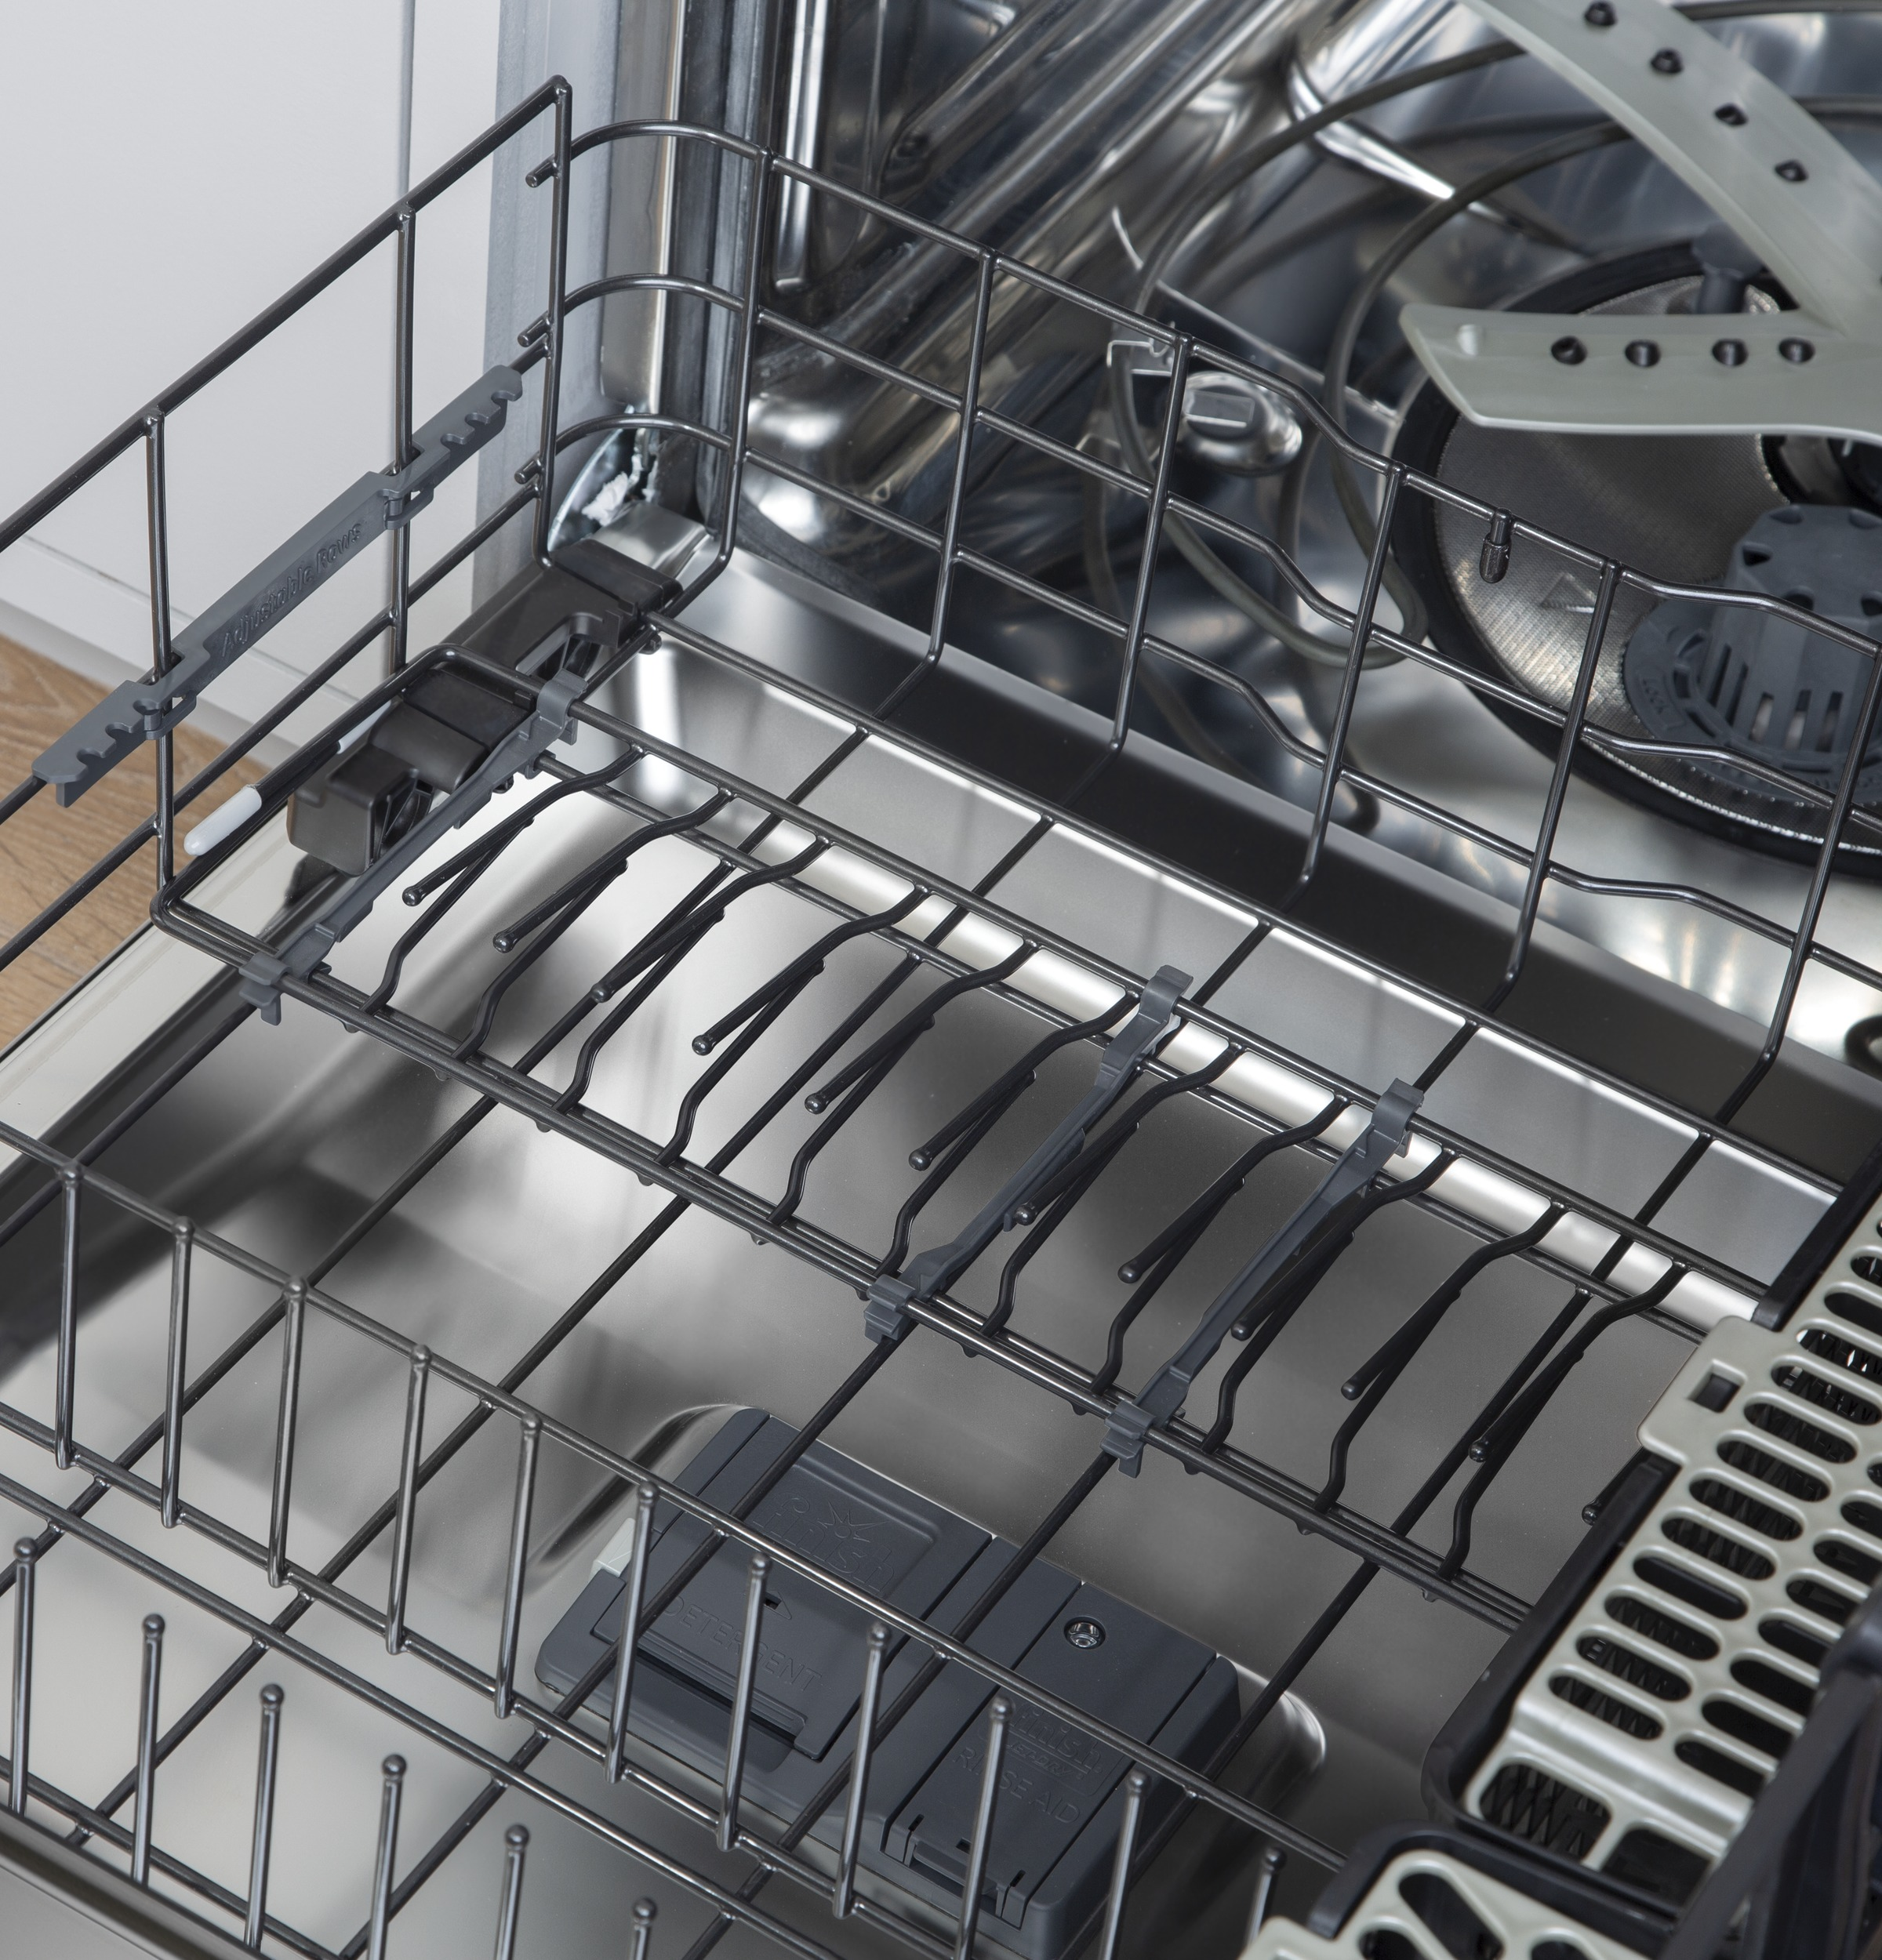 Model: CDT845P4NW2 | Cafe Café™ Stainless Steel Interior Dishwasher with Sanitize and Ultra Wash & Dry